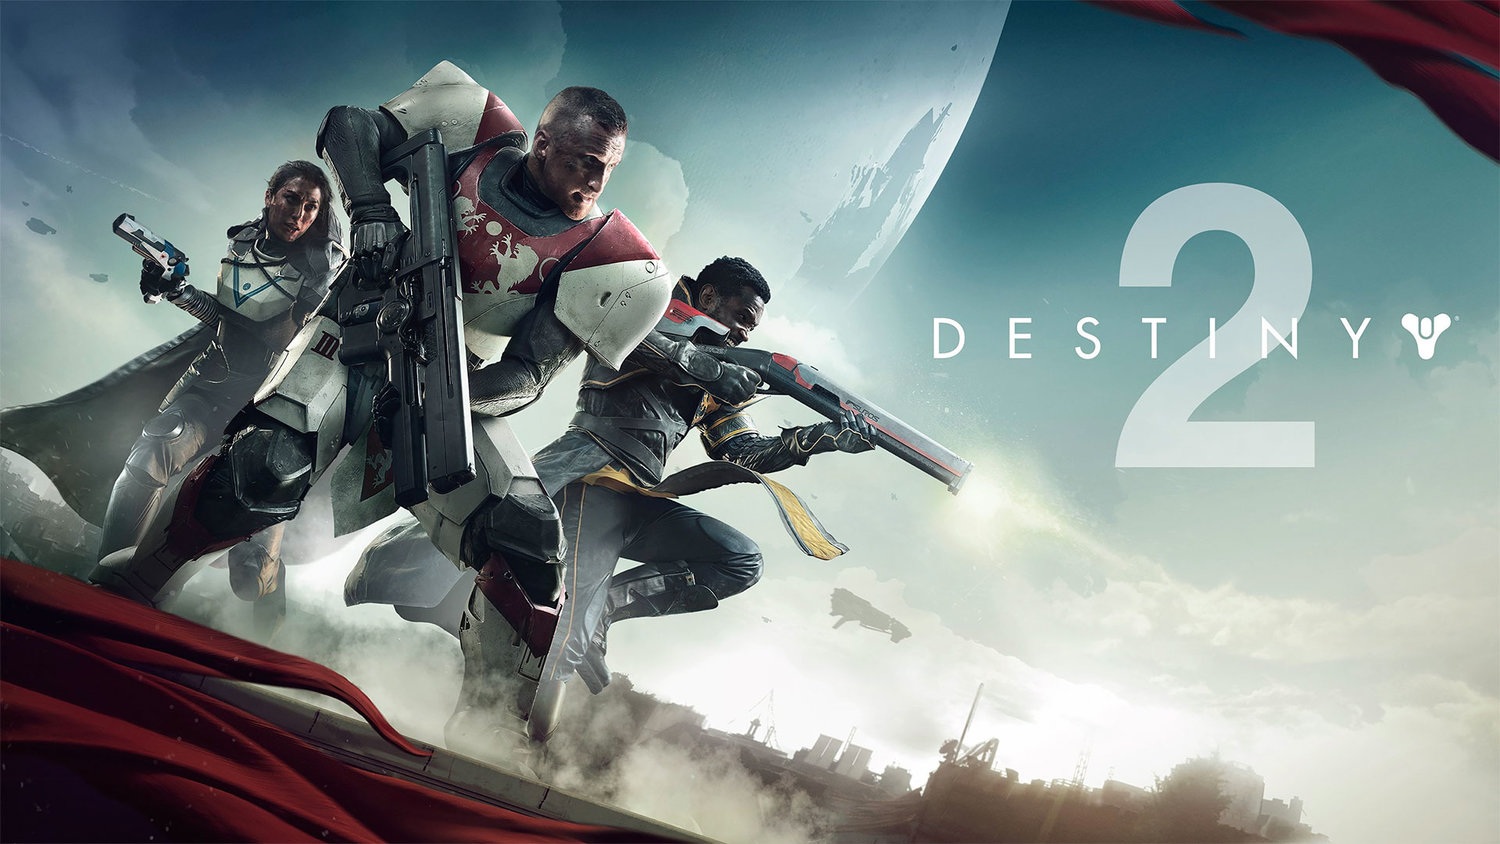 DESTINY 2 Pre Order Collectors Edition Sold Out On The First Day GameTyrant